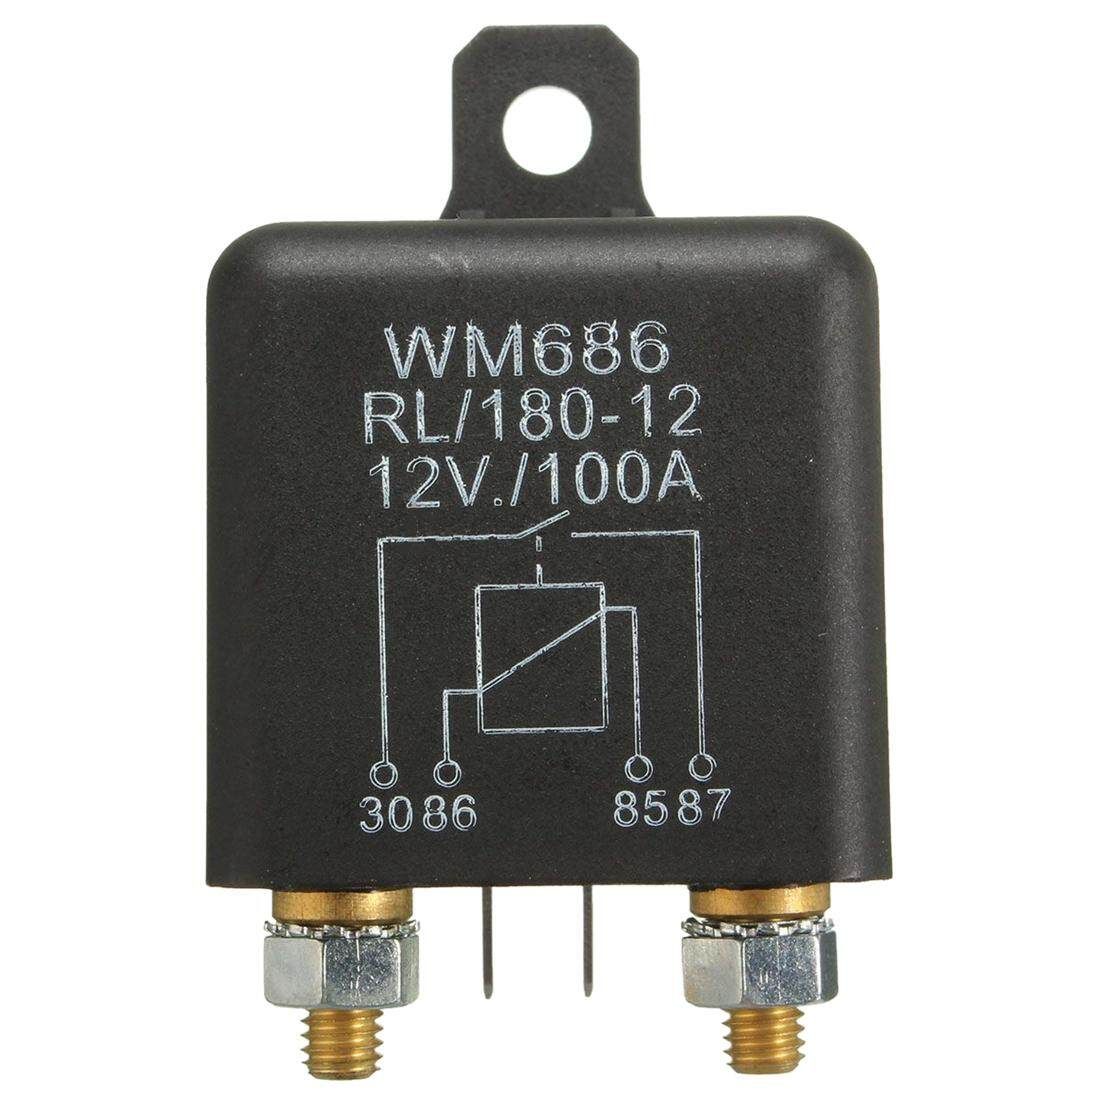 Car Relays For Sale Automotive Online Brands Prices Micro Relay 12v Spdt 20 Amp 100amp 4 Pin Heavy Duty On Off Switch Split Charge Auto